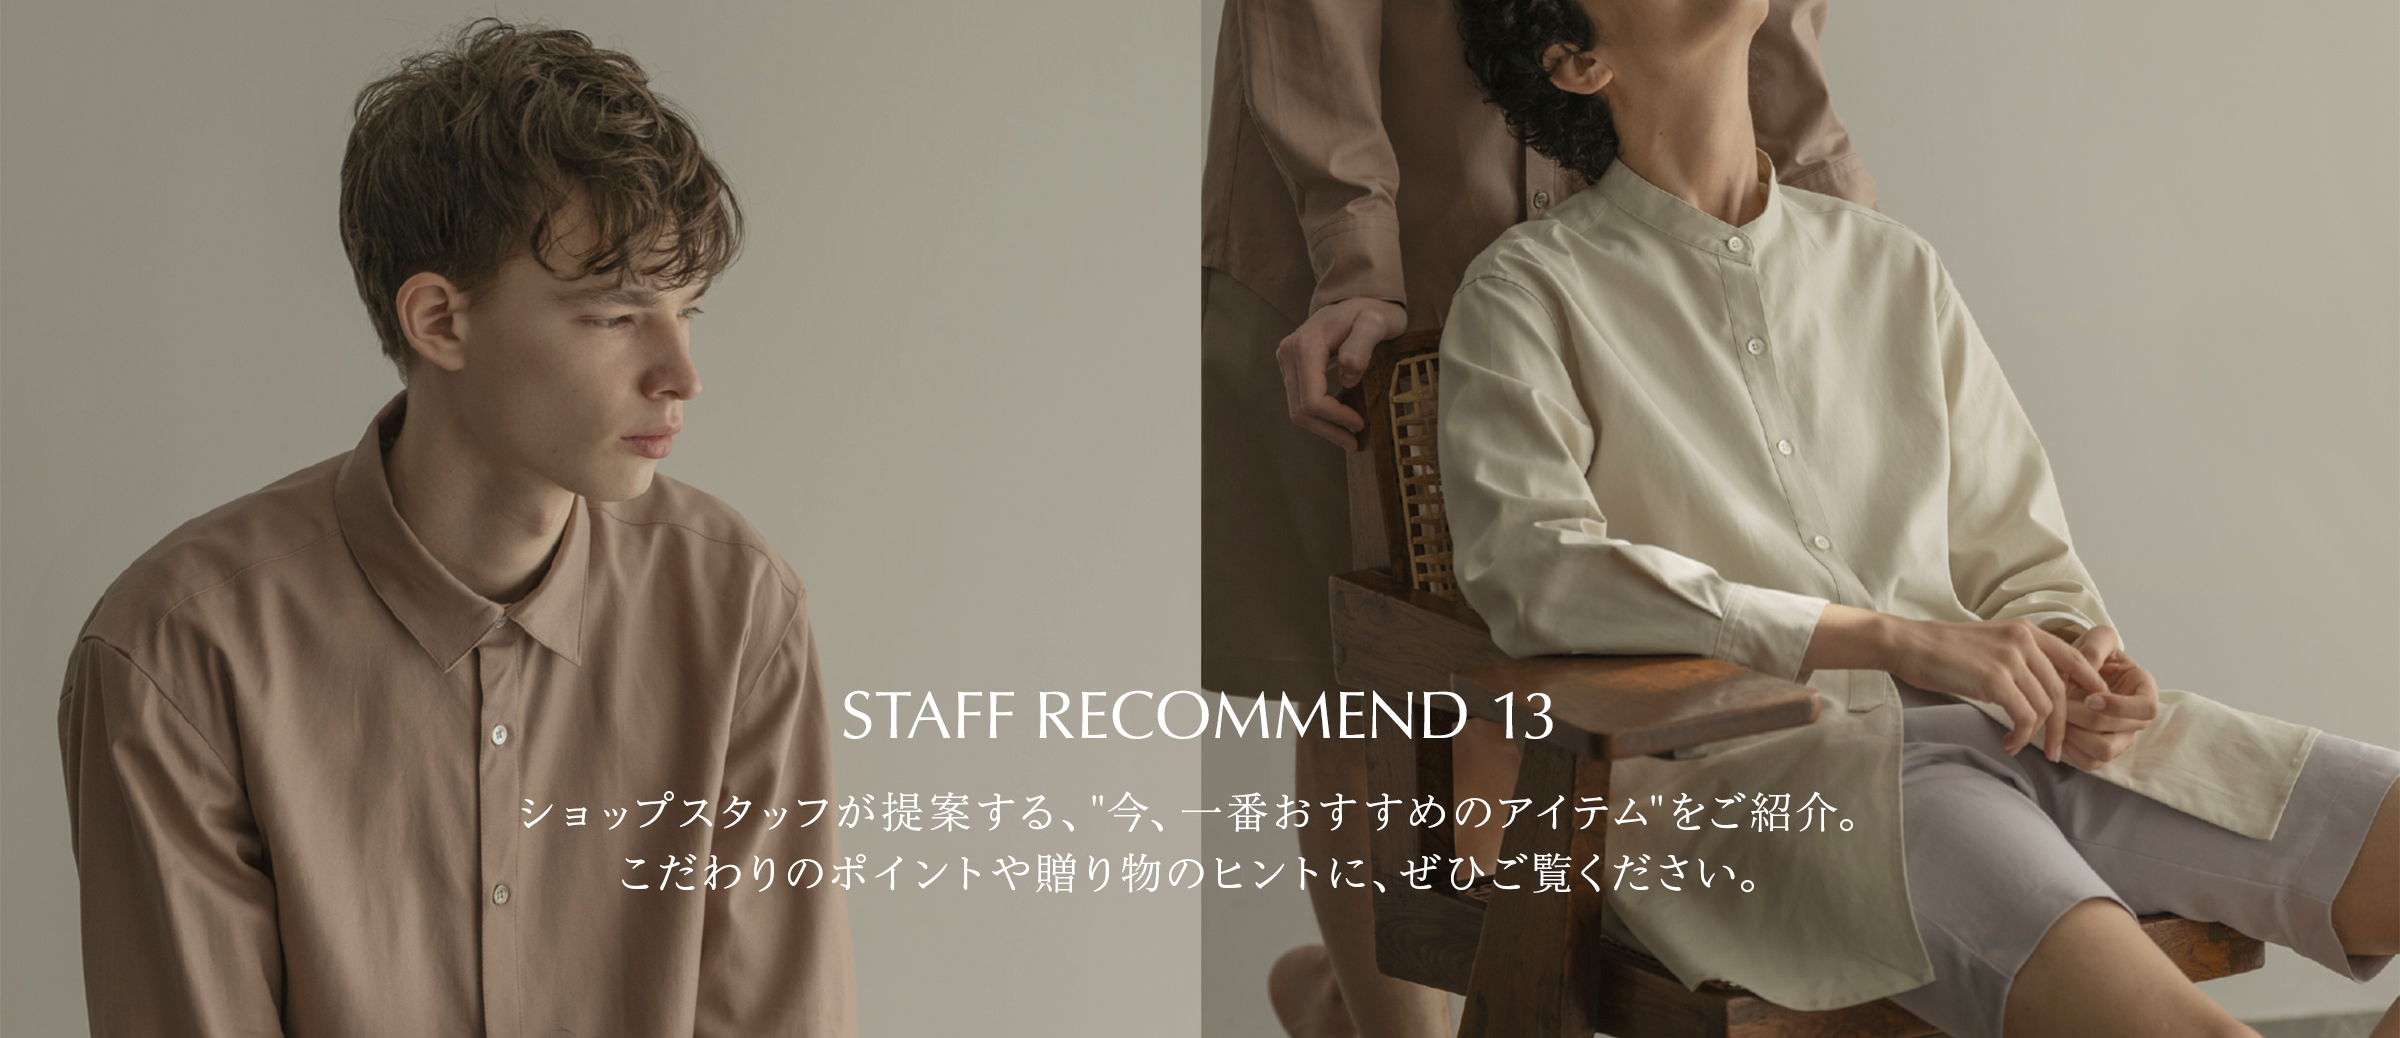 STAFF RECOMMEND 12